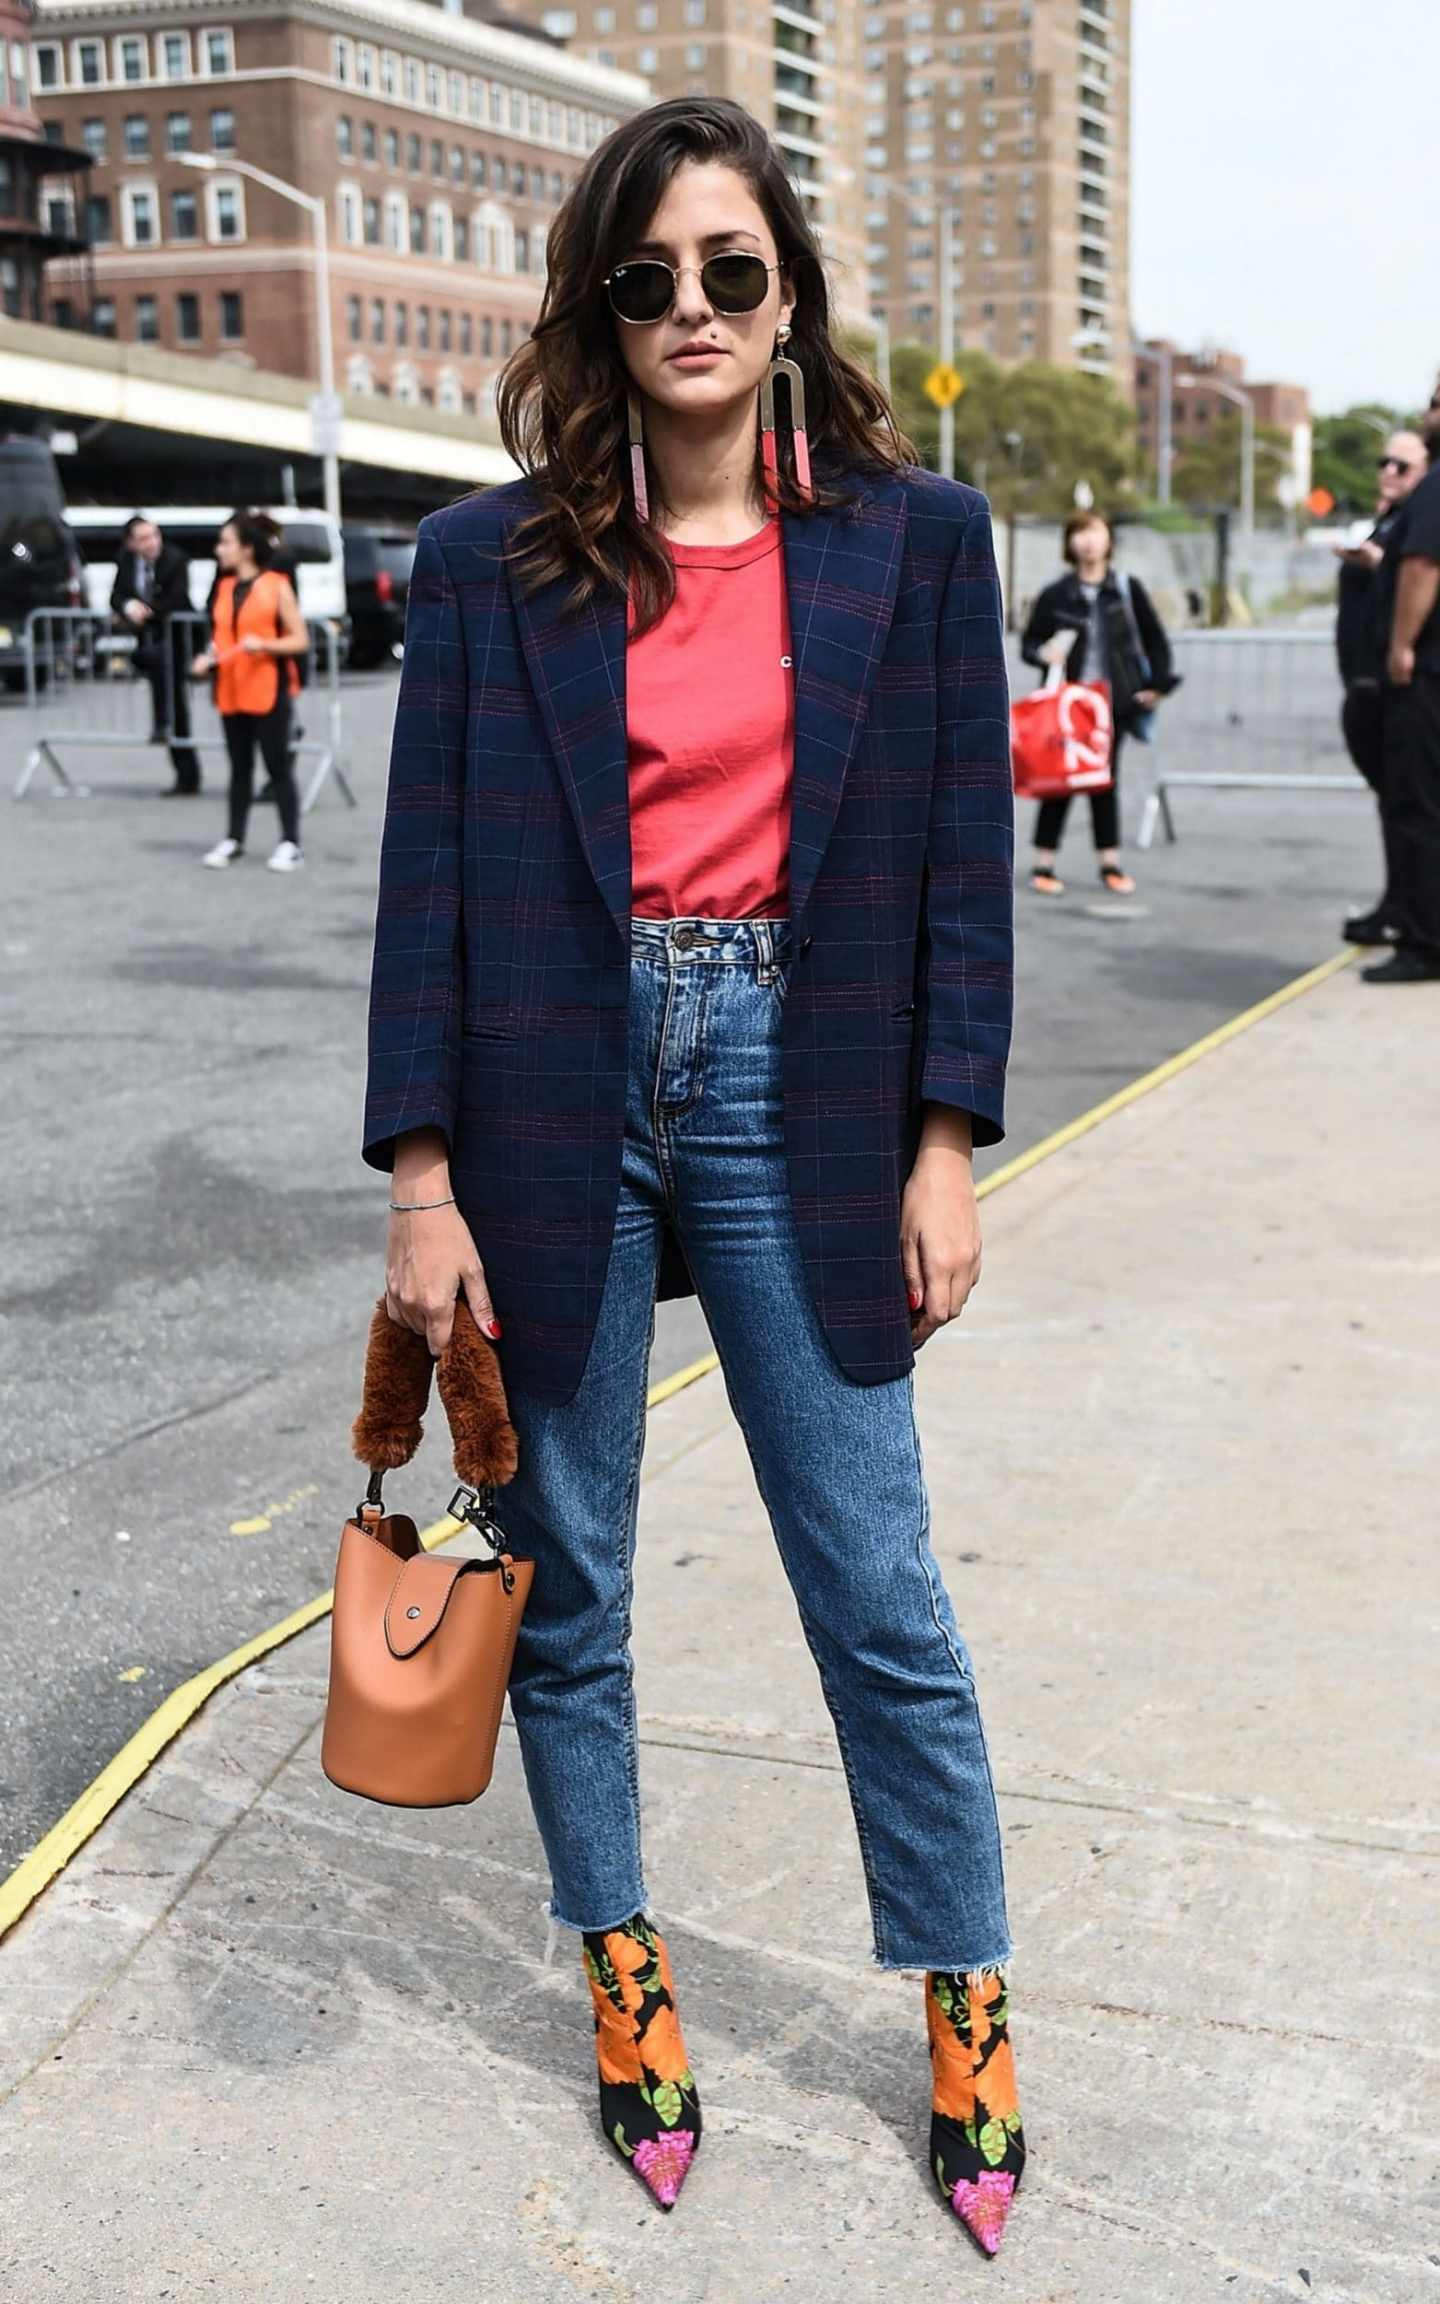 Denim Street Style From New York Fashion Week SS18 | The ...